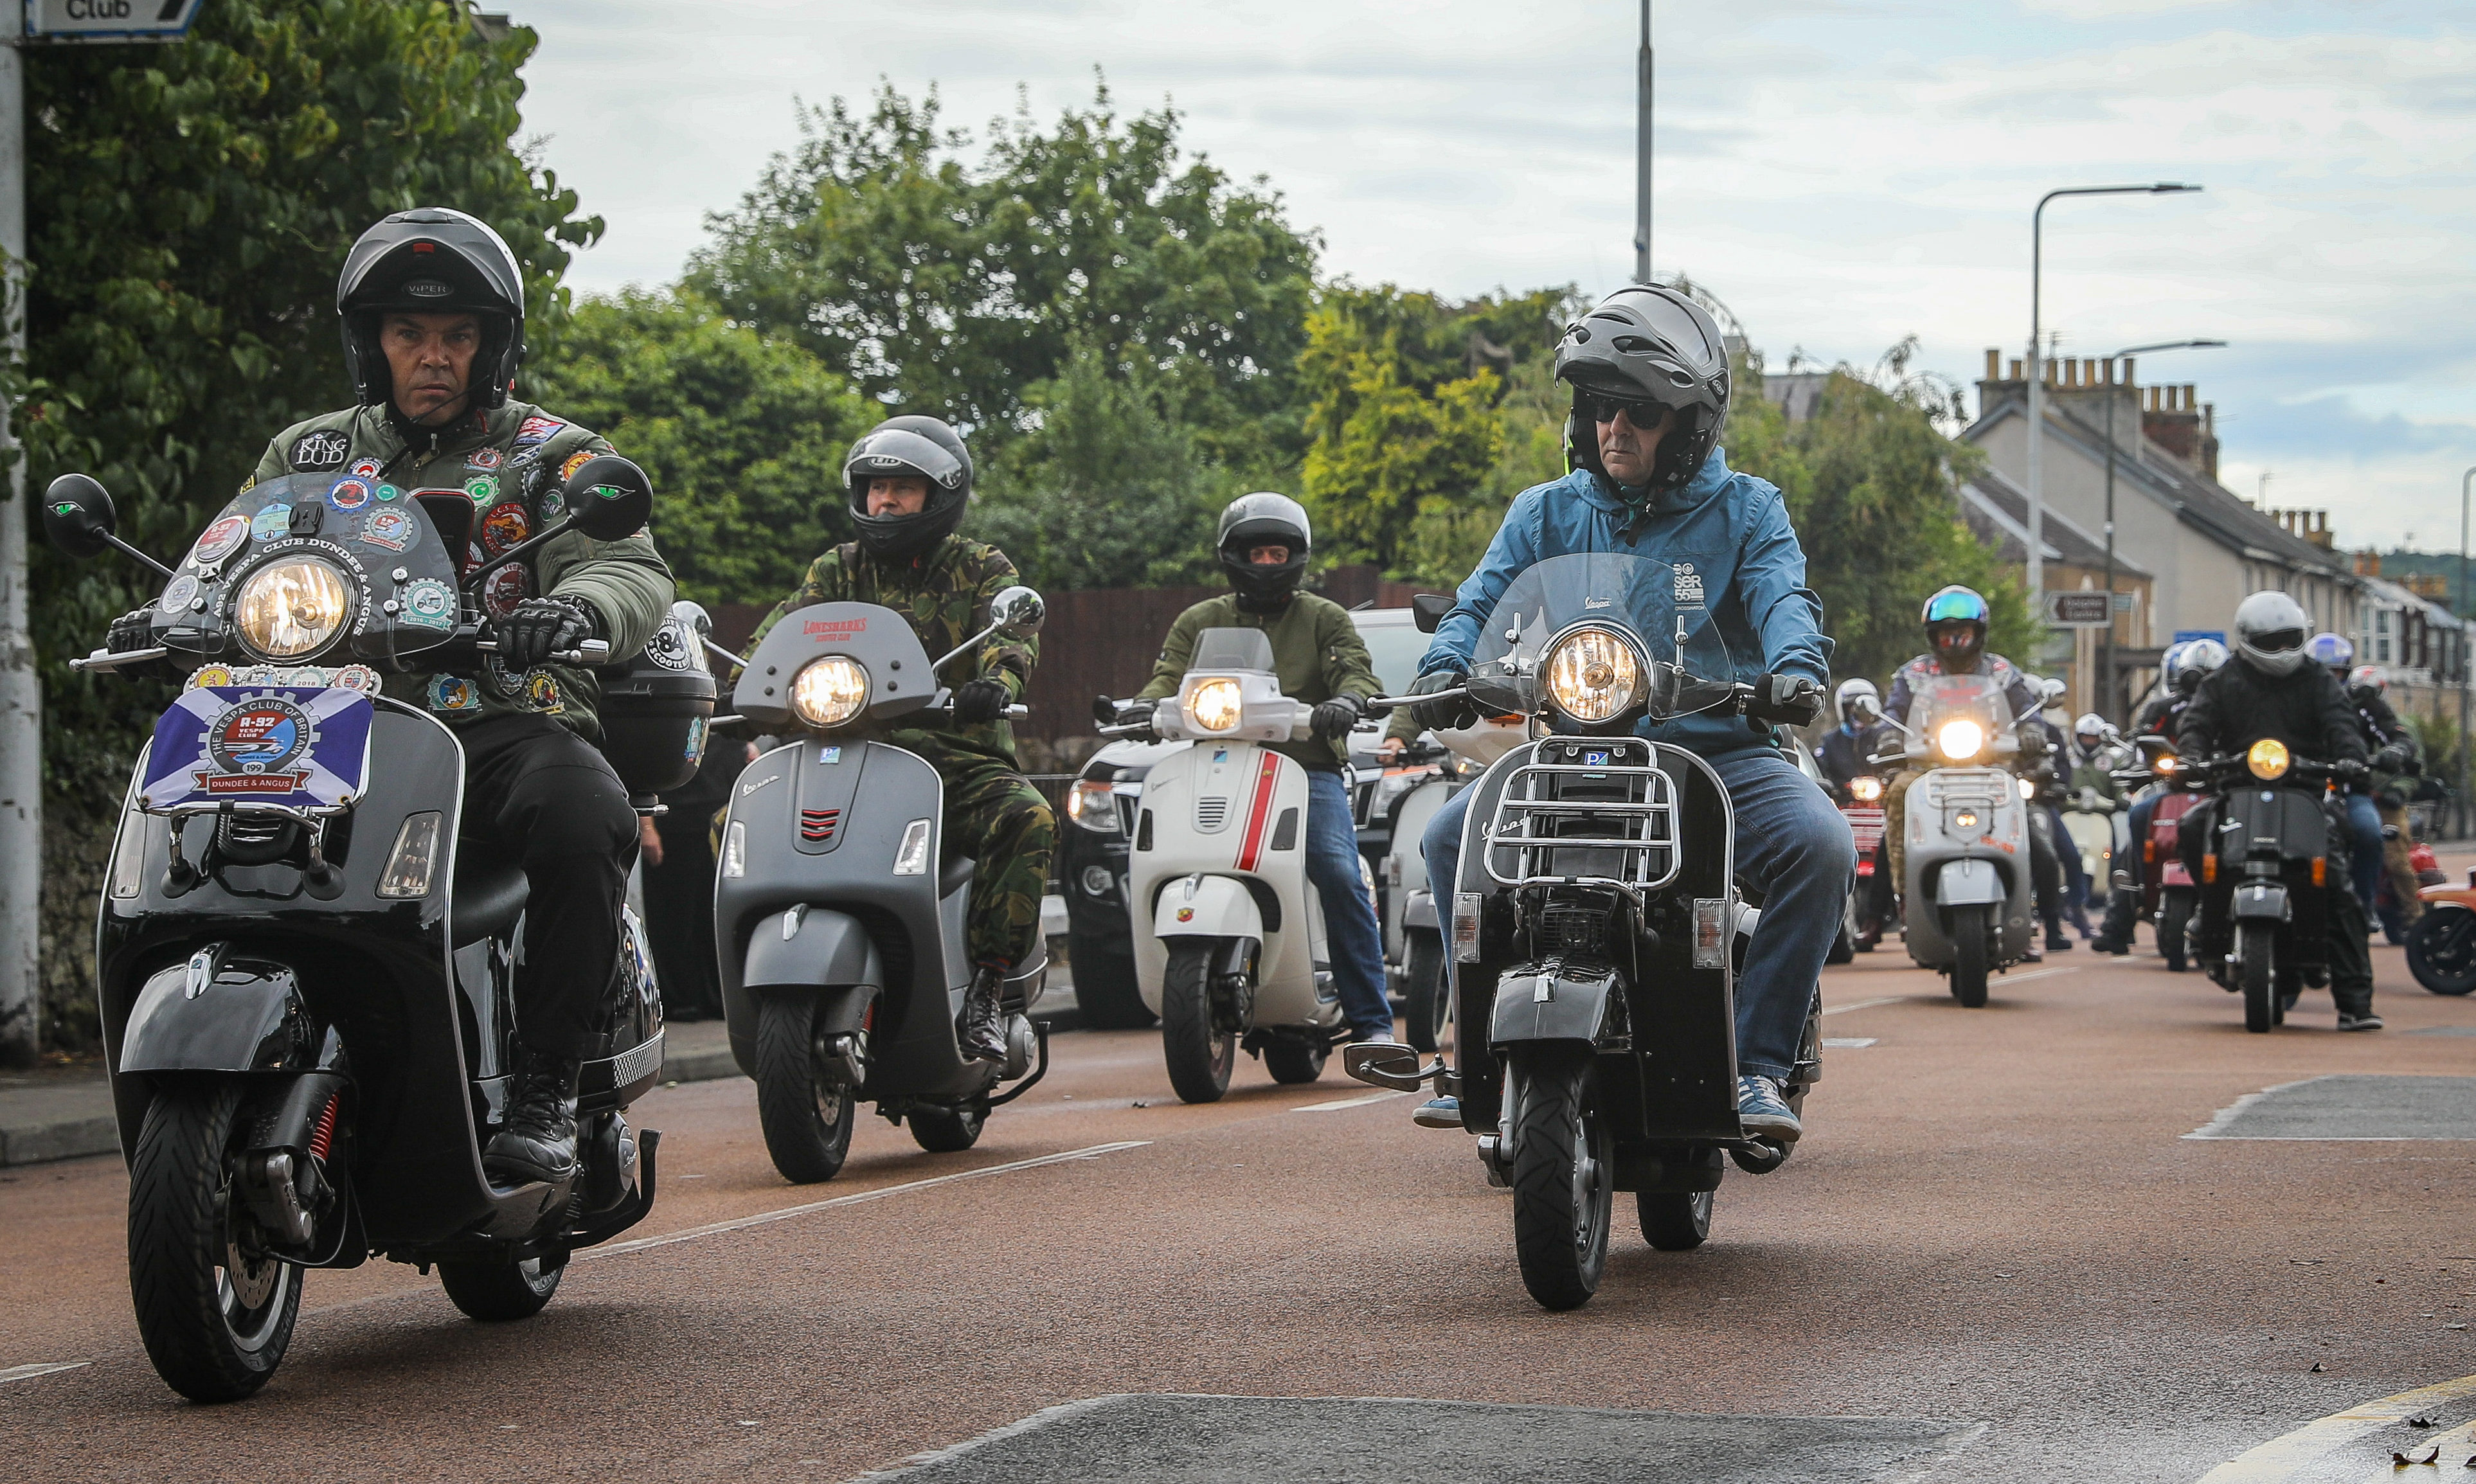 Motorcyclists in Tayport for Andrew Hart's funeral procession.